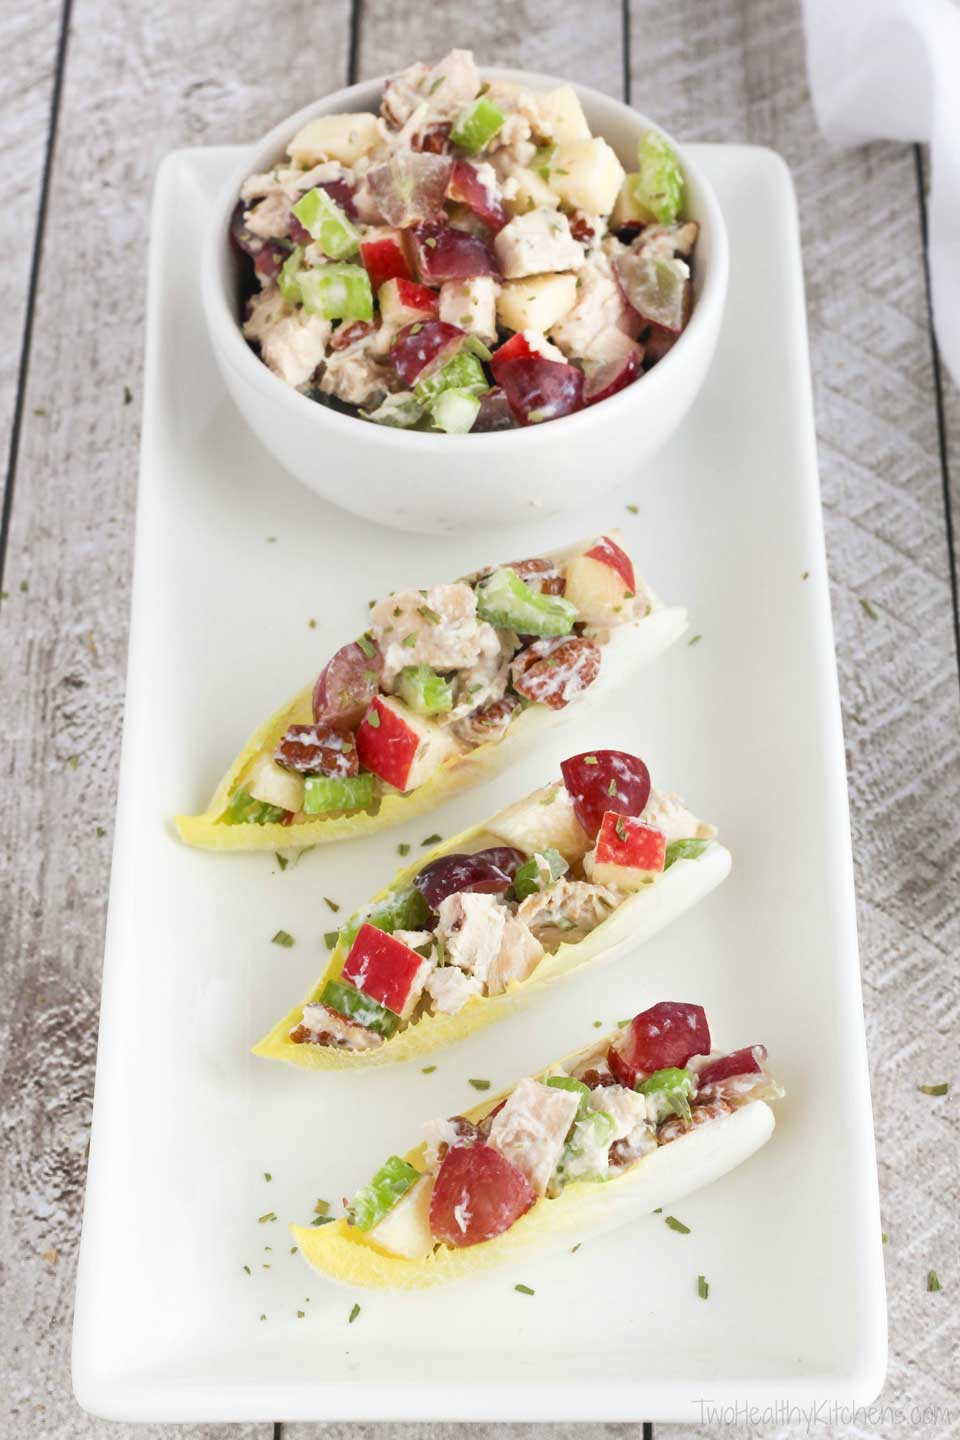 Surprise! Our healthy chicken salad recipe is also fantastic as an appetizer! Serve it in endive spears or with crackers!